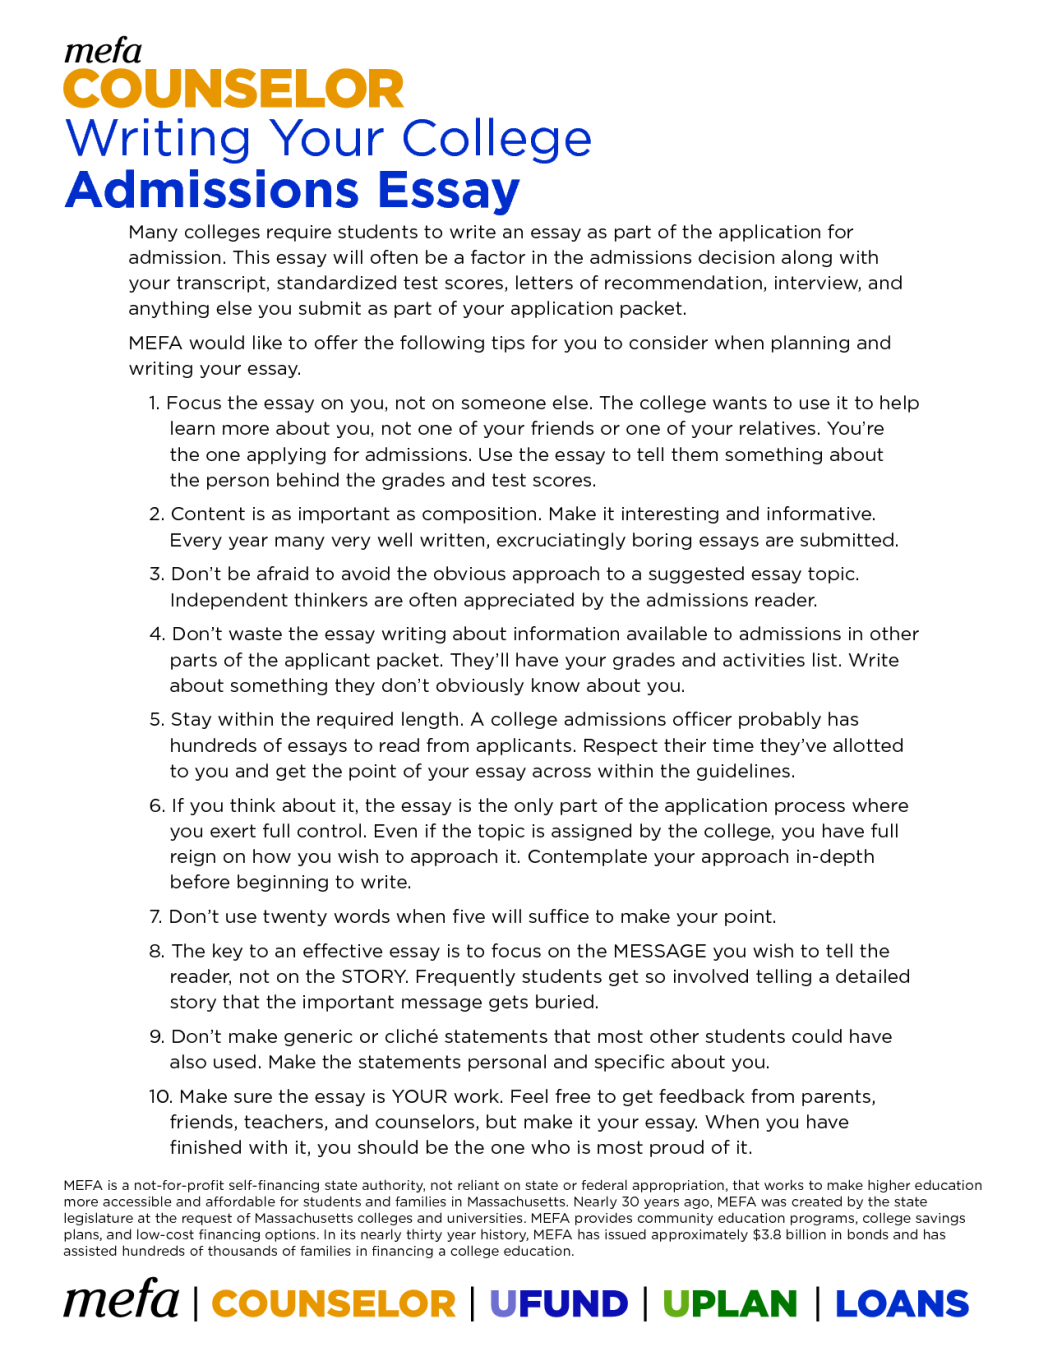 004 Essay Example Writing Custom 2wolvescentervt Help Write My For Free Online Application College Successful Sample Admission L To Remarkable Research Paper Me Full